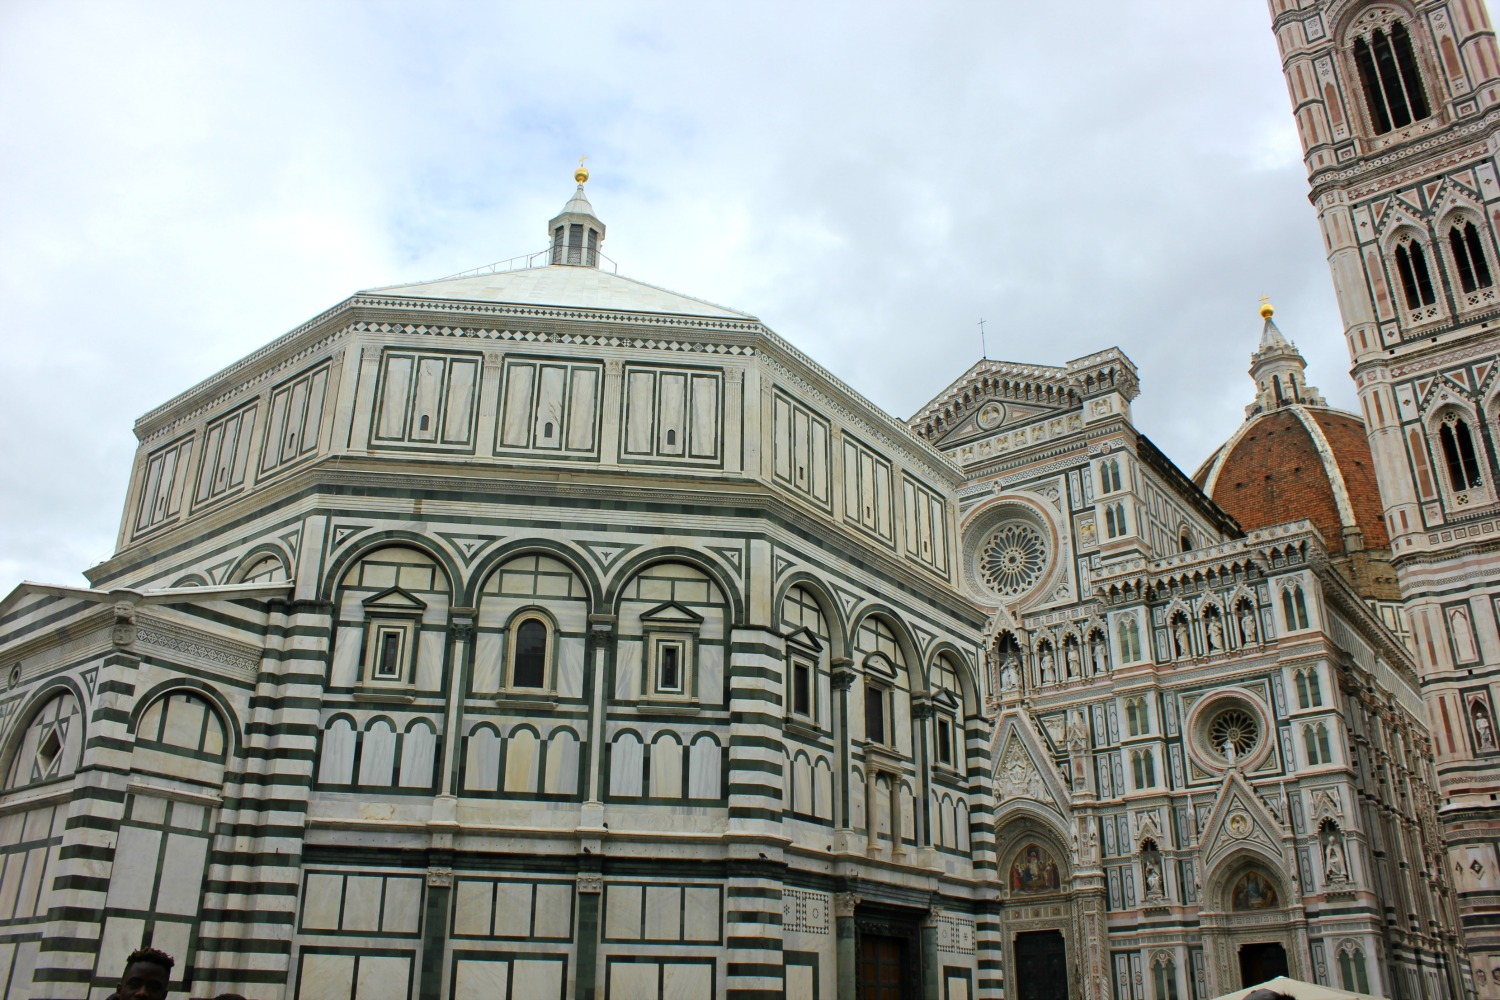 Florence Duomo on a cloudy day - my Uffizi tour with kids and gelato making day in Florence